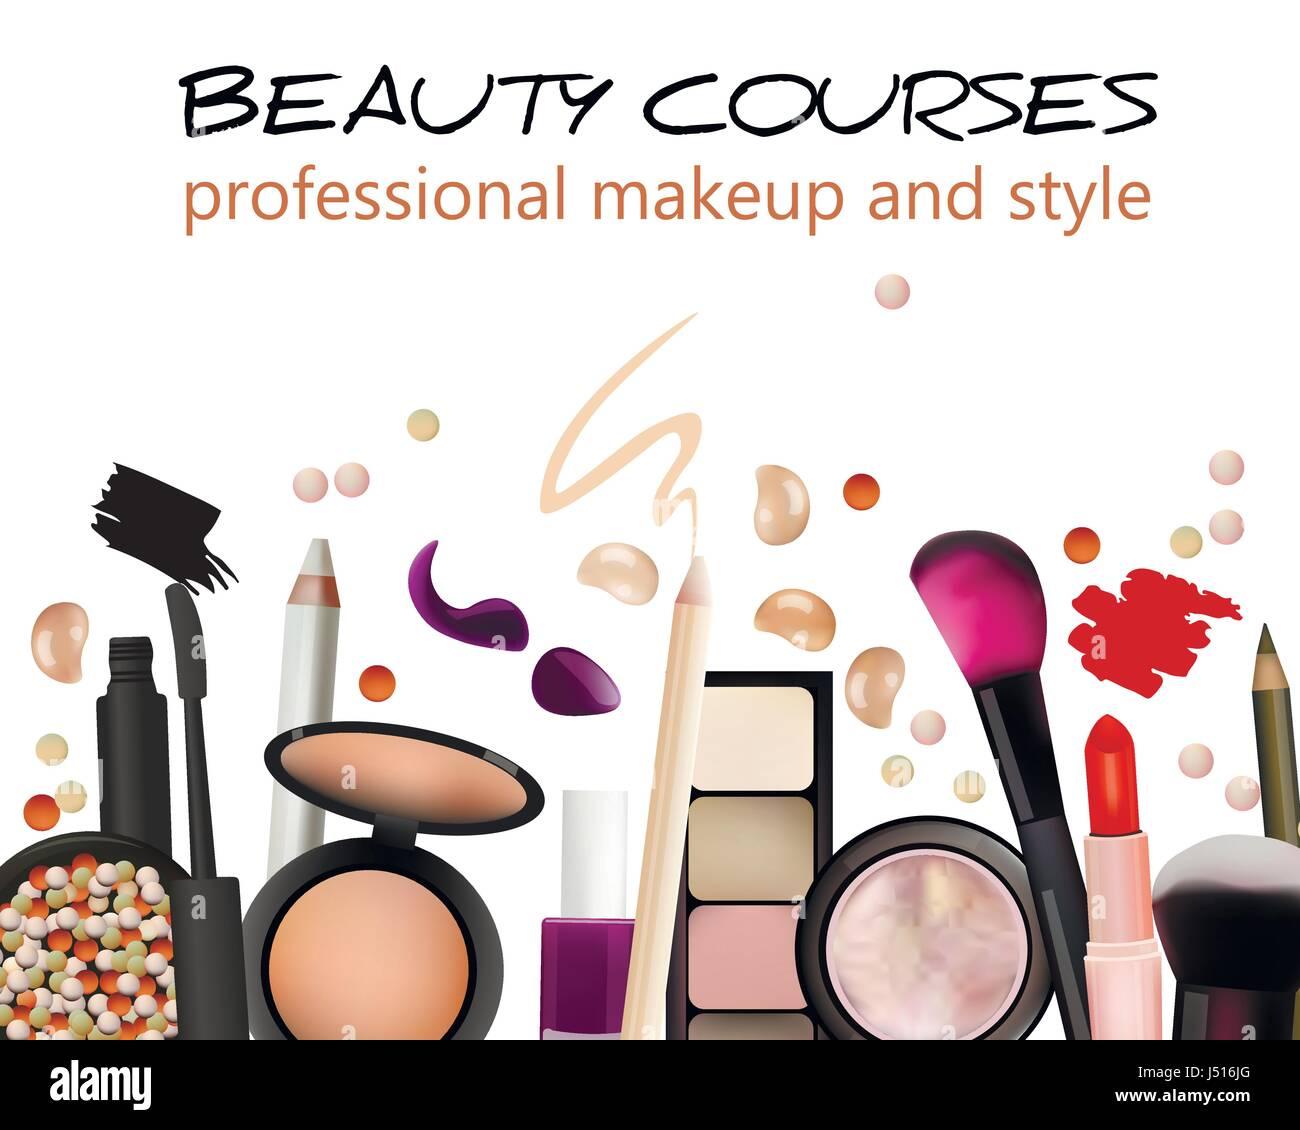 beauty courses poster design  cosmetic products